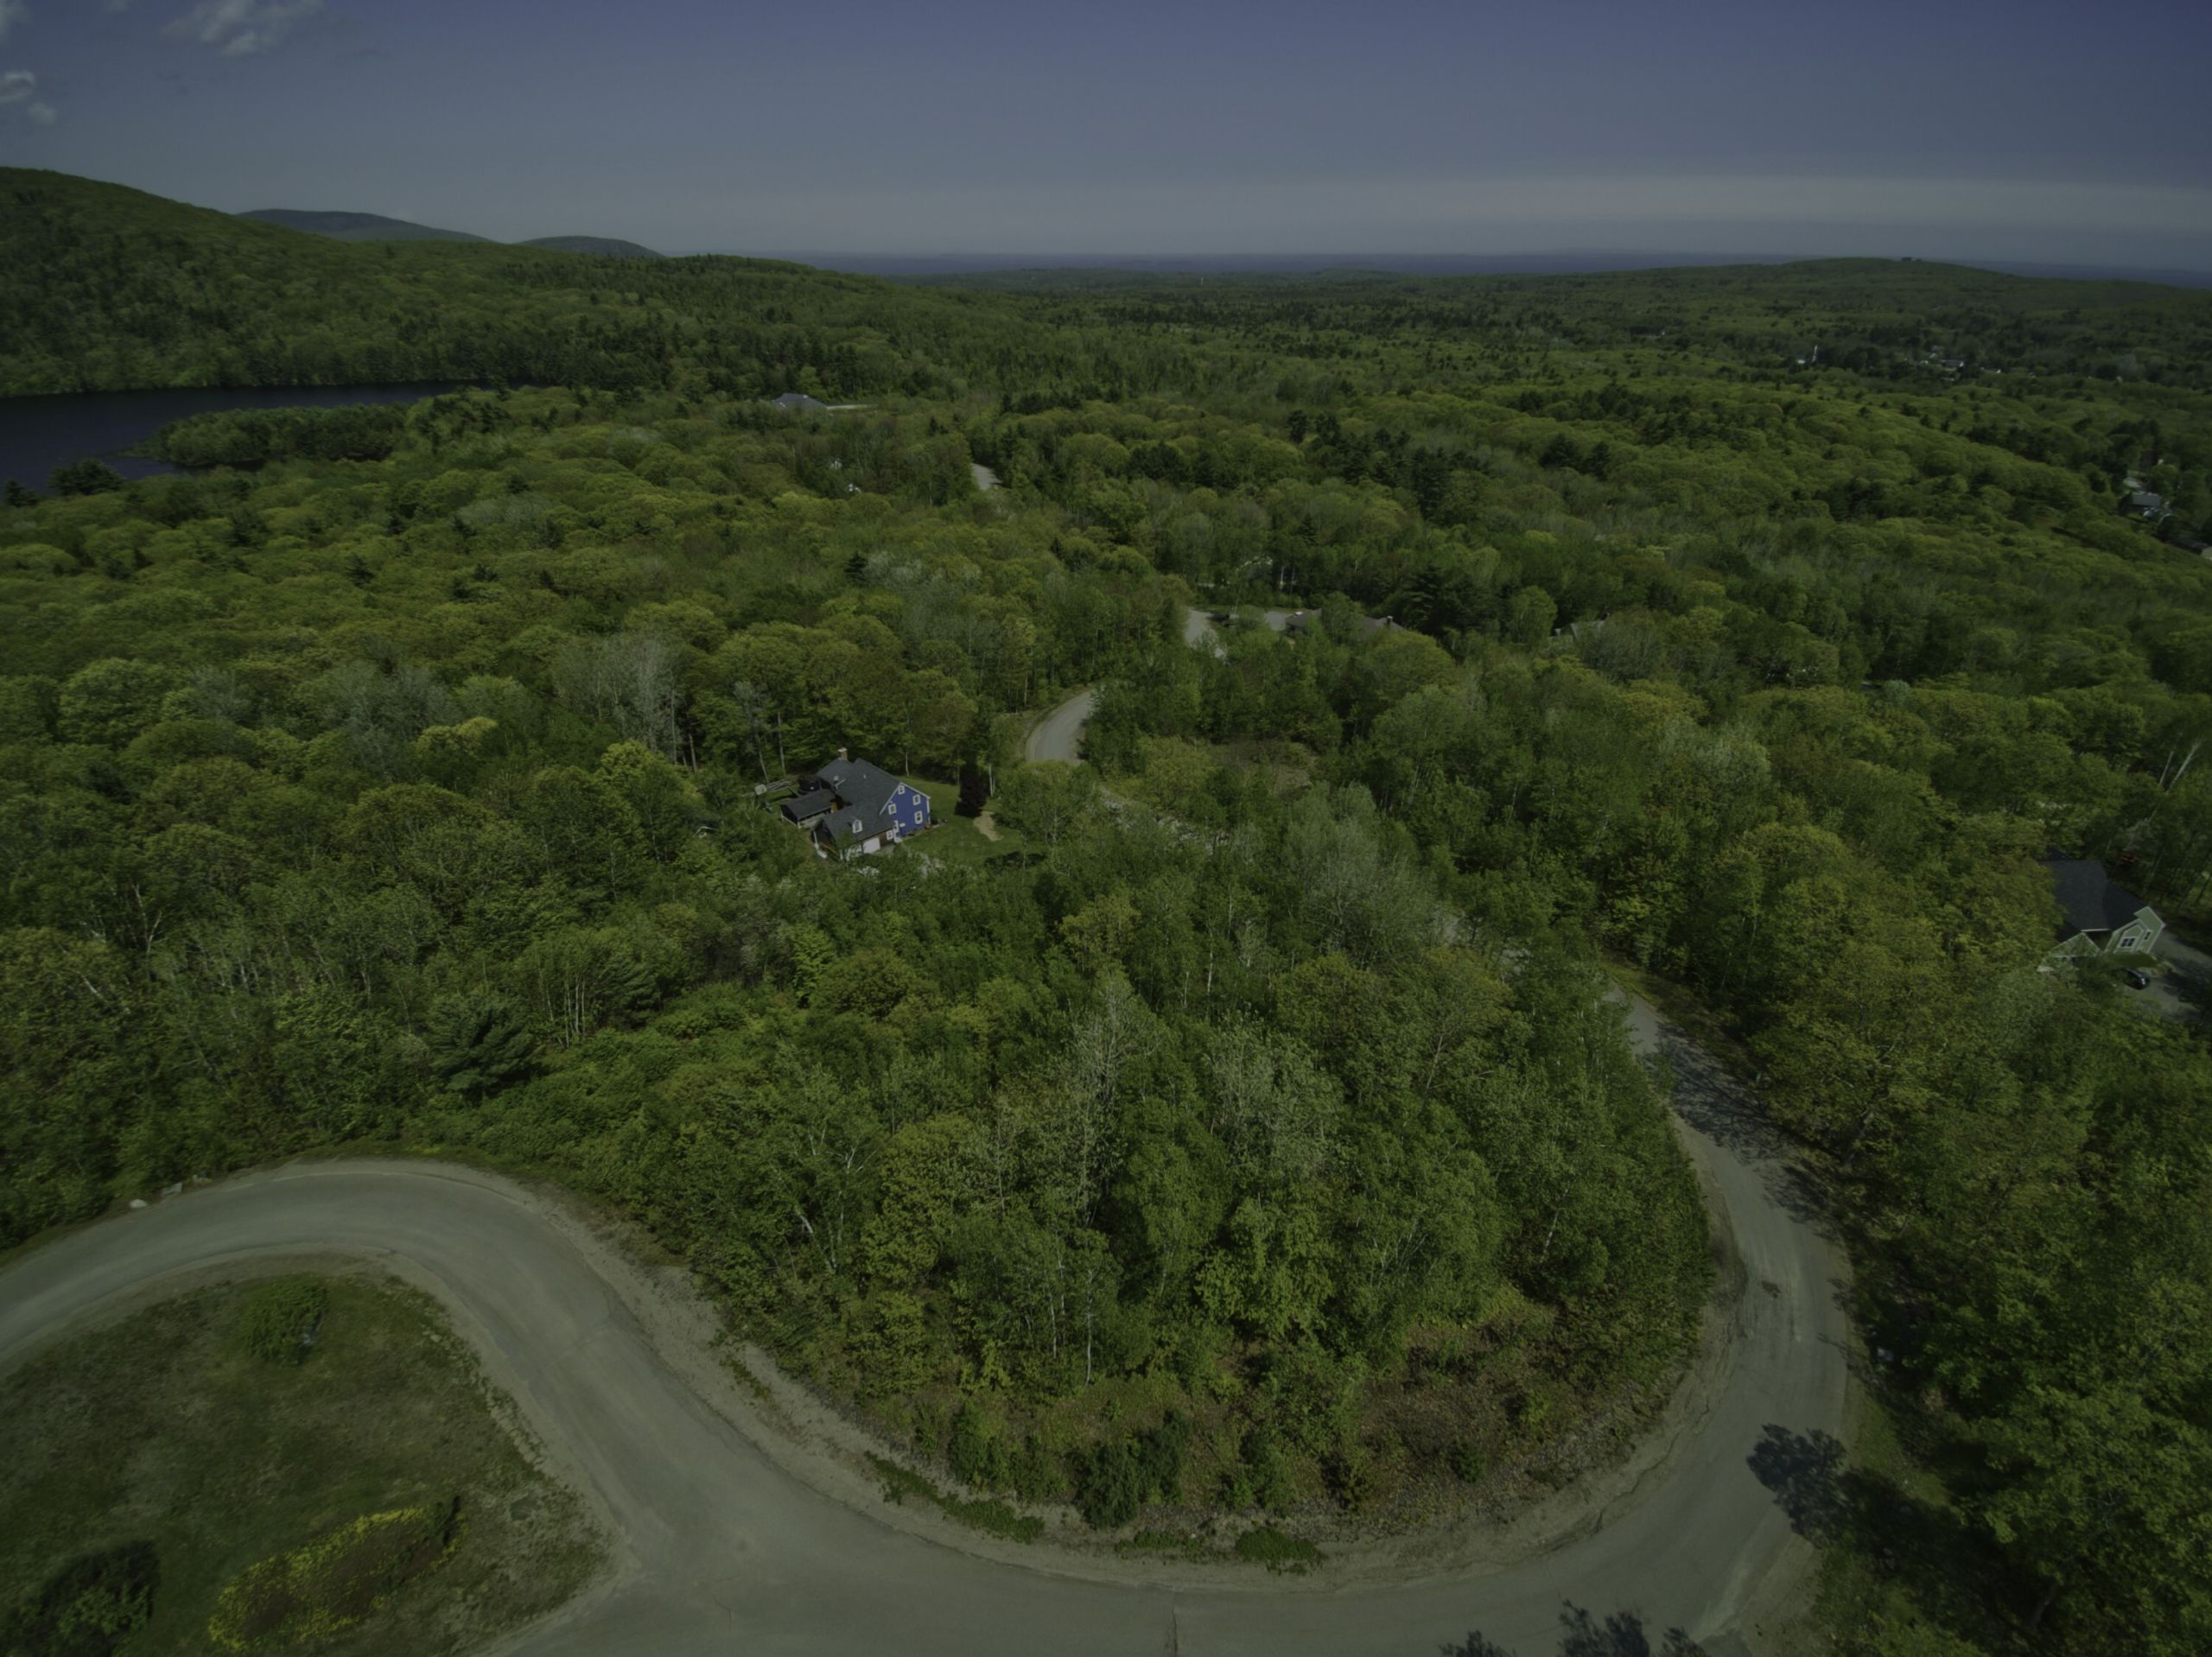 Lot 17 Stoney Hill Road, Rockport, Maine; Land for sale